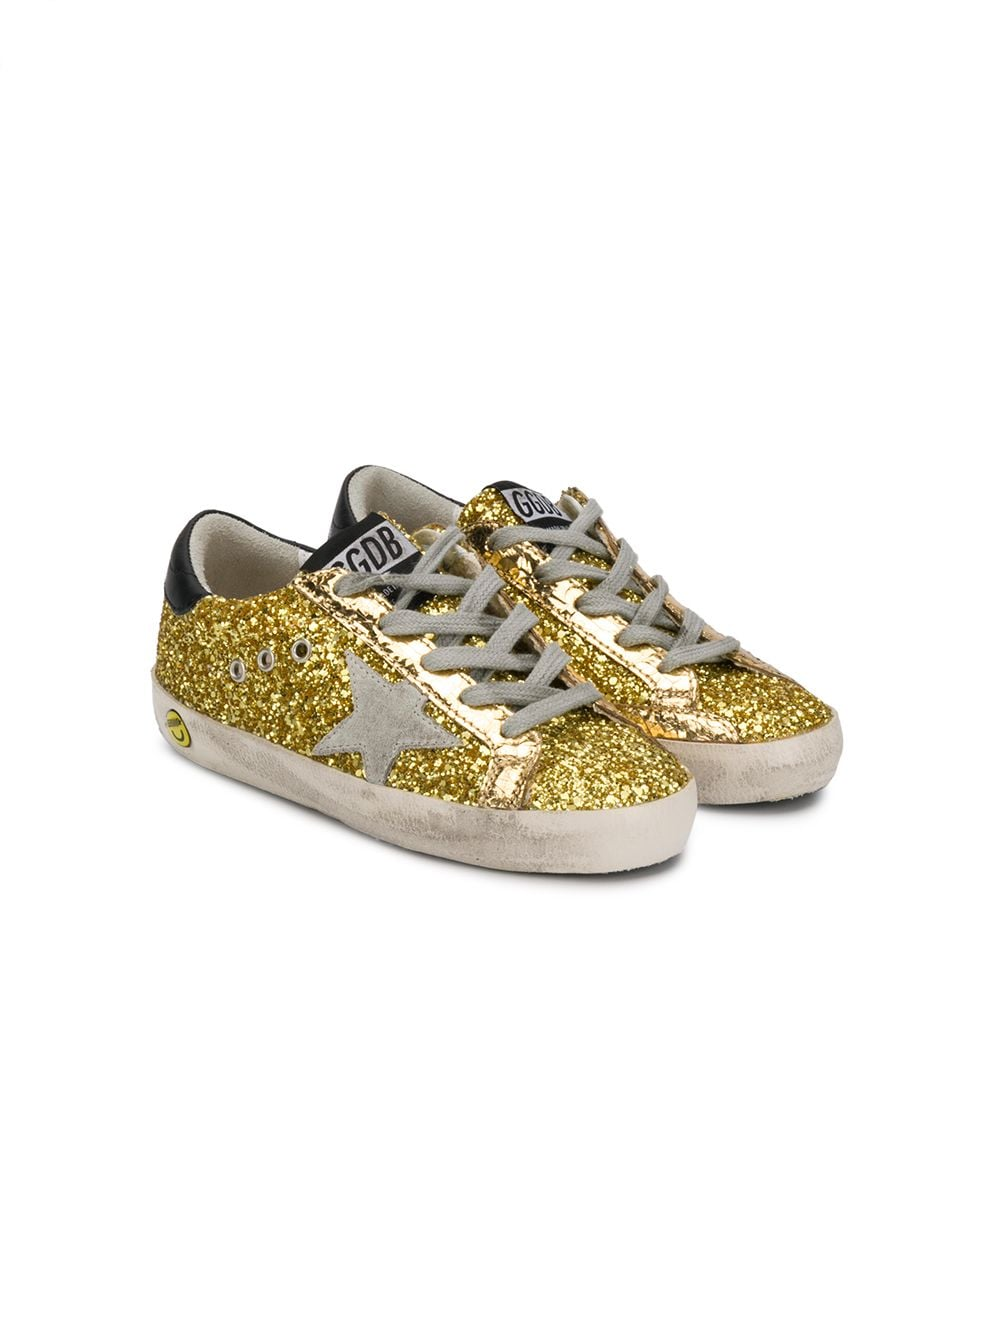 Golden Goose Deluxe Brand   кроссовки 'Superstar' с блестками   Clouty